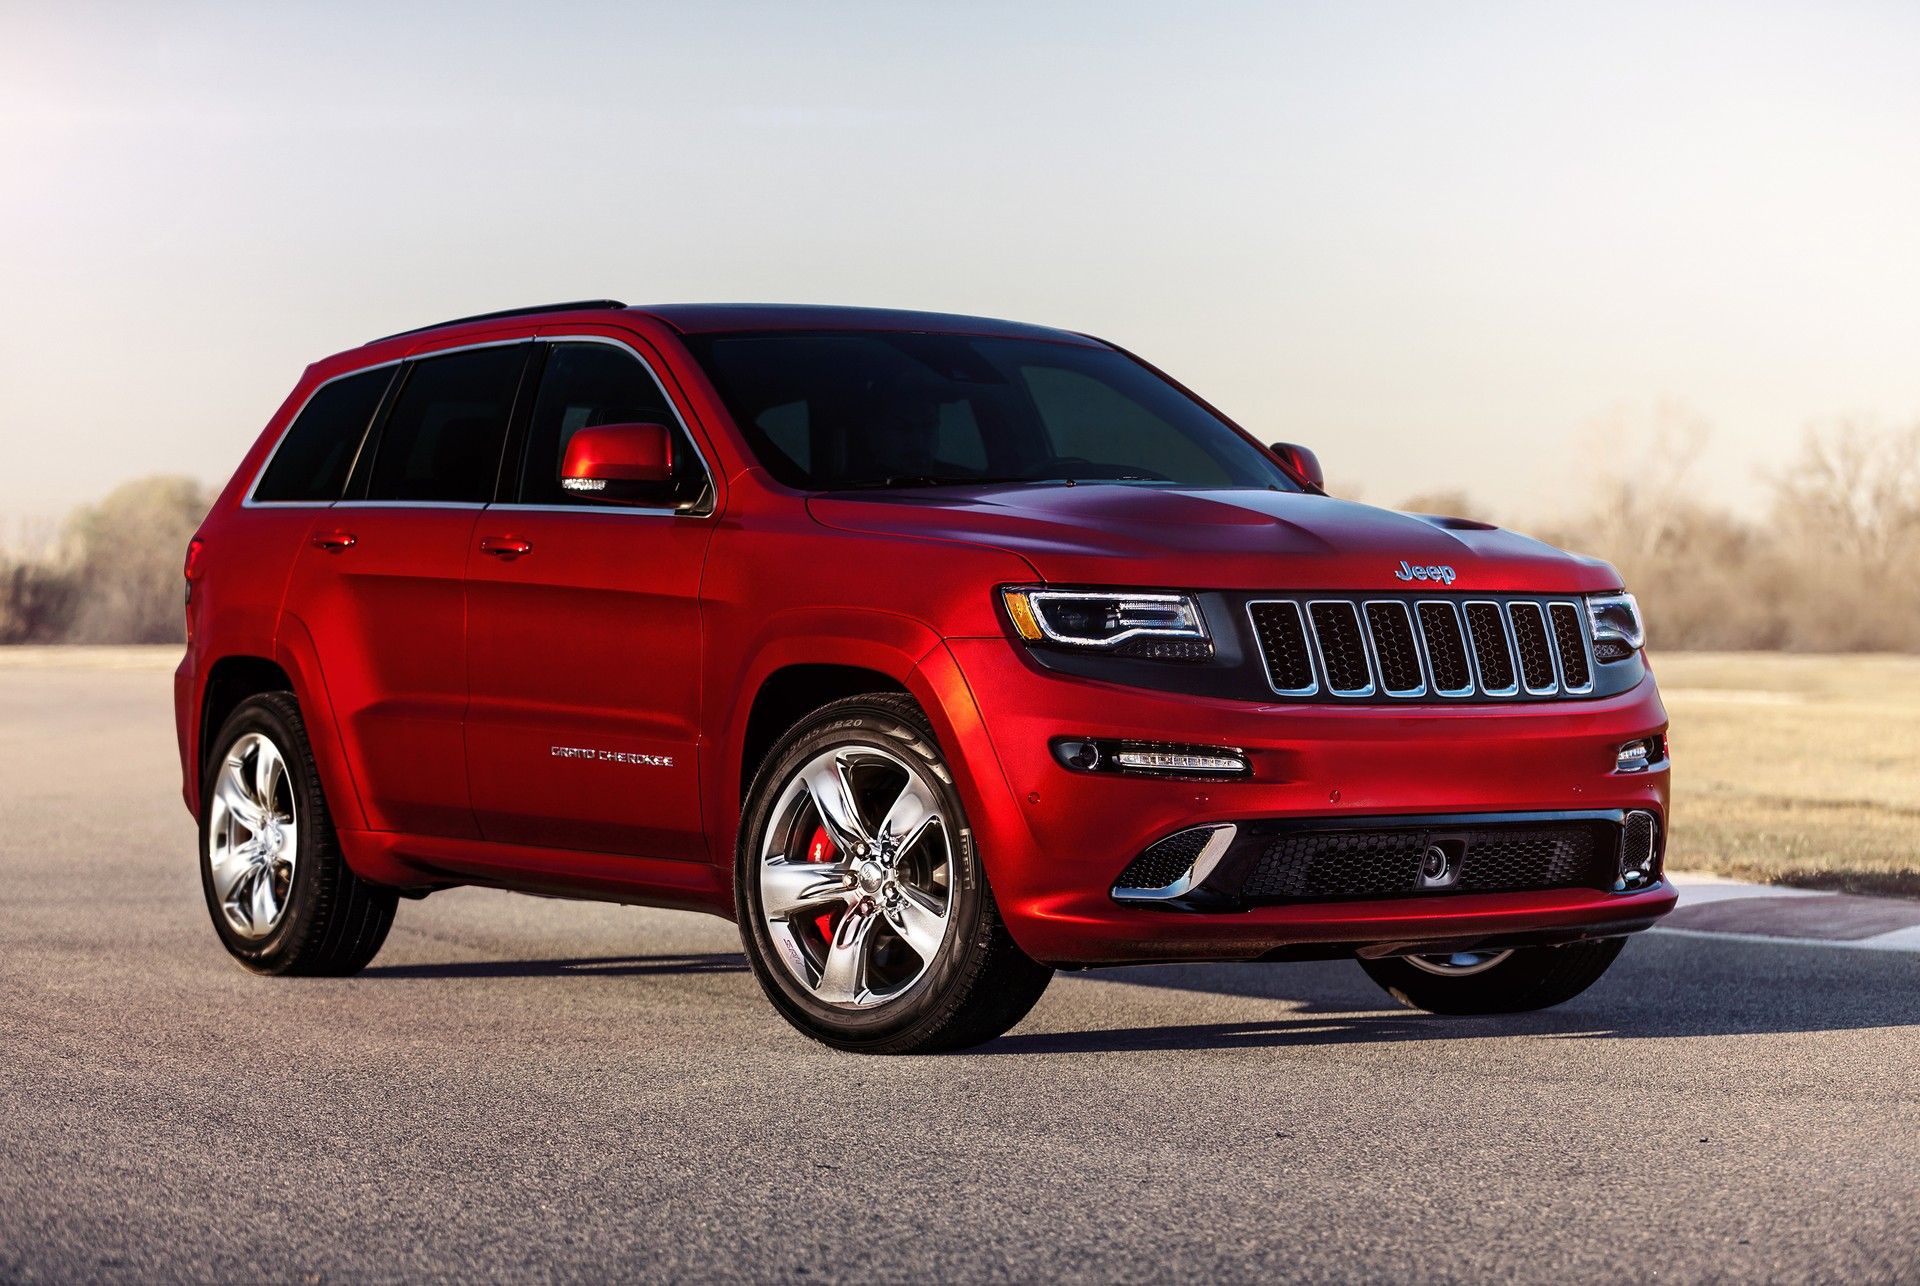 2015 jeep grand cherokee dodge durango recalled to check for suspension flaws. Black Bedroom Furniture Sets. Home Design Ideas